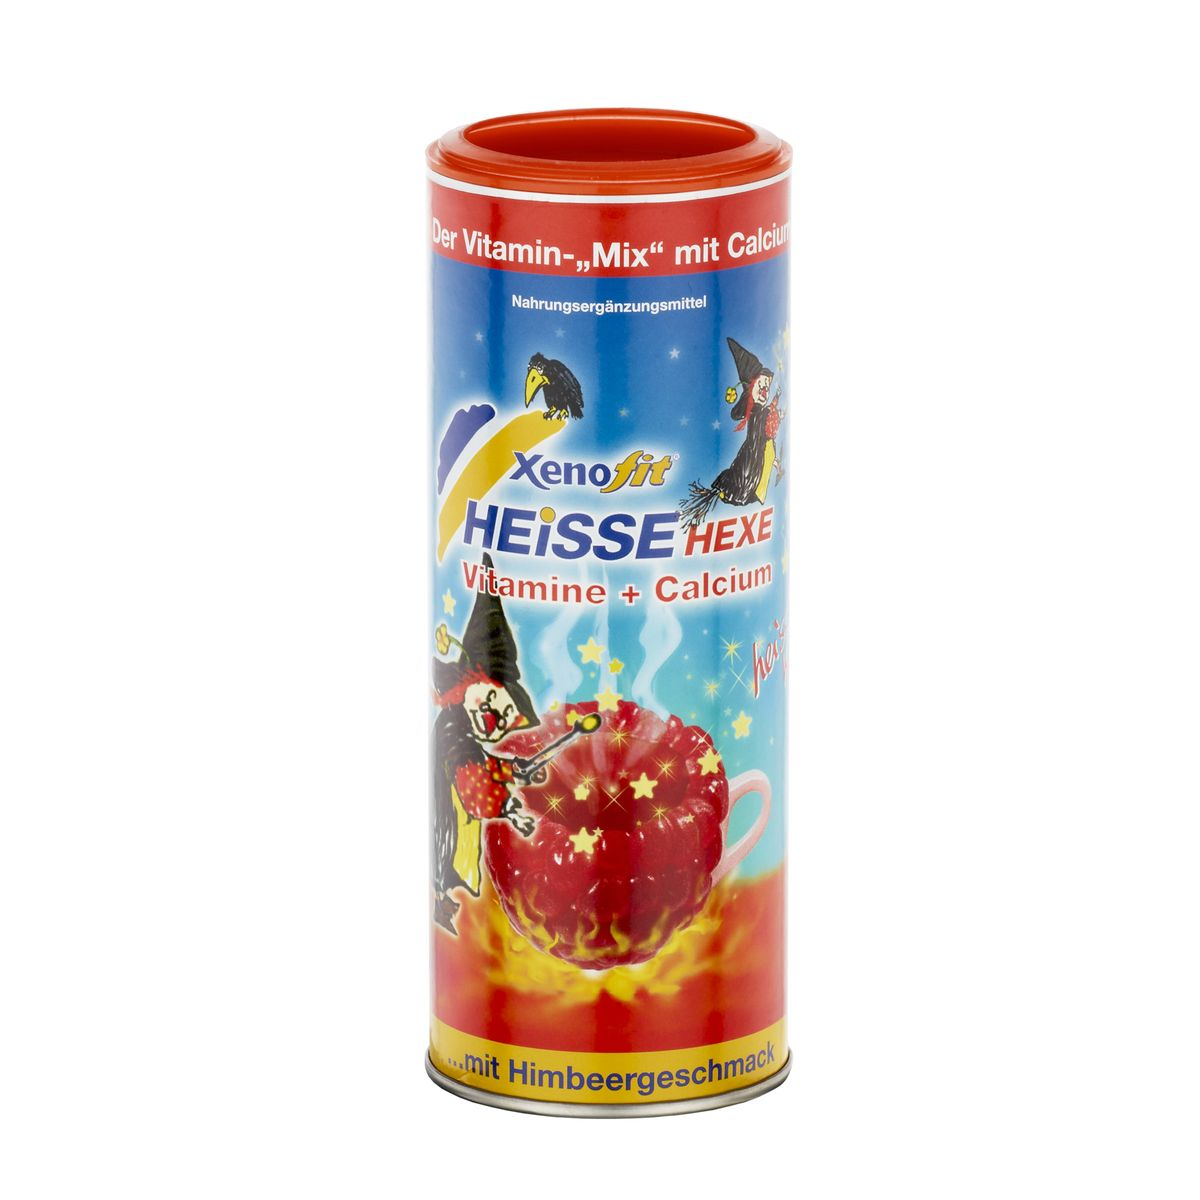 Heisse Hexe hot drink